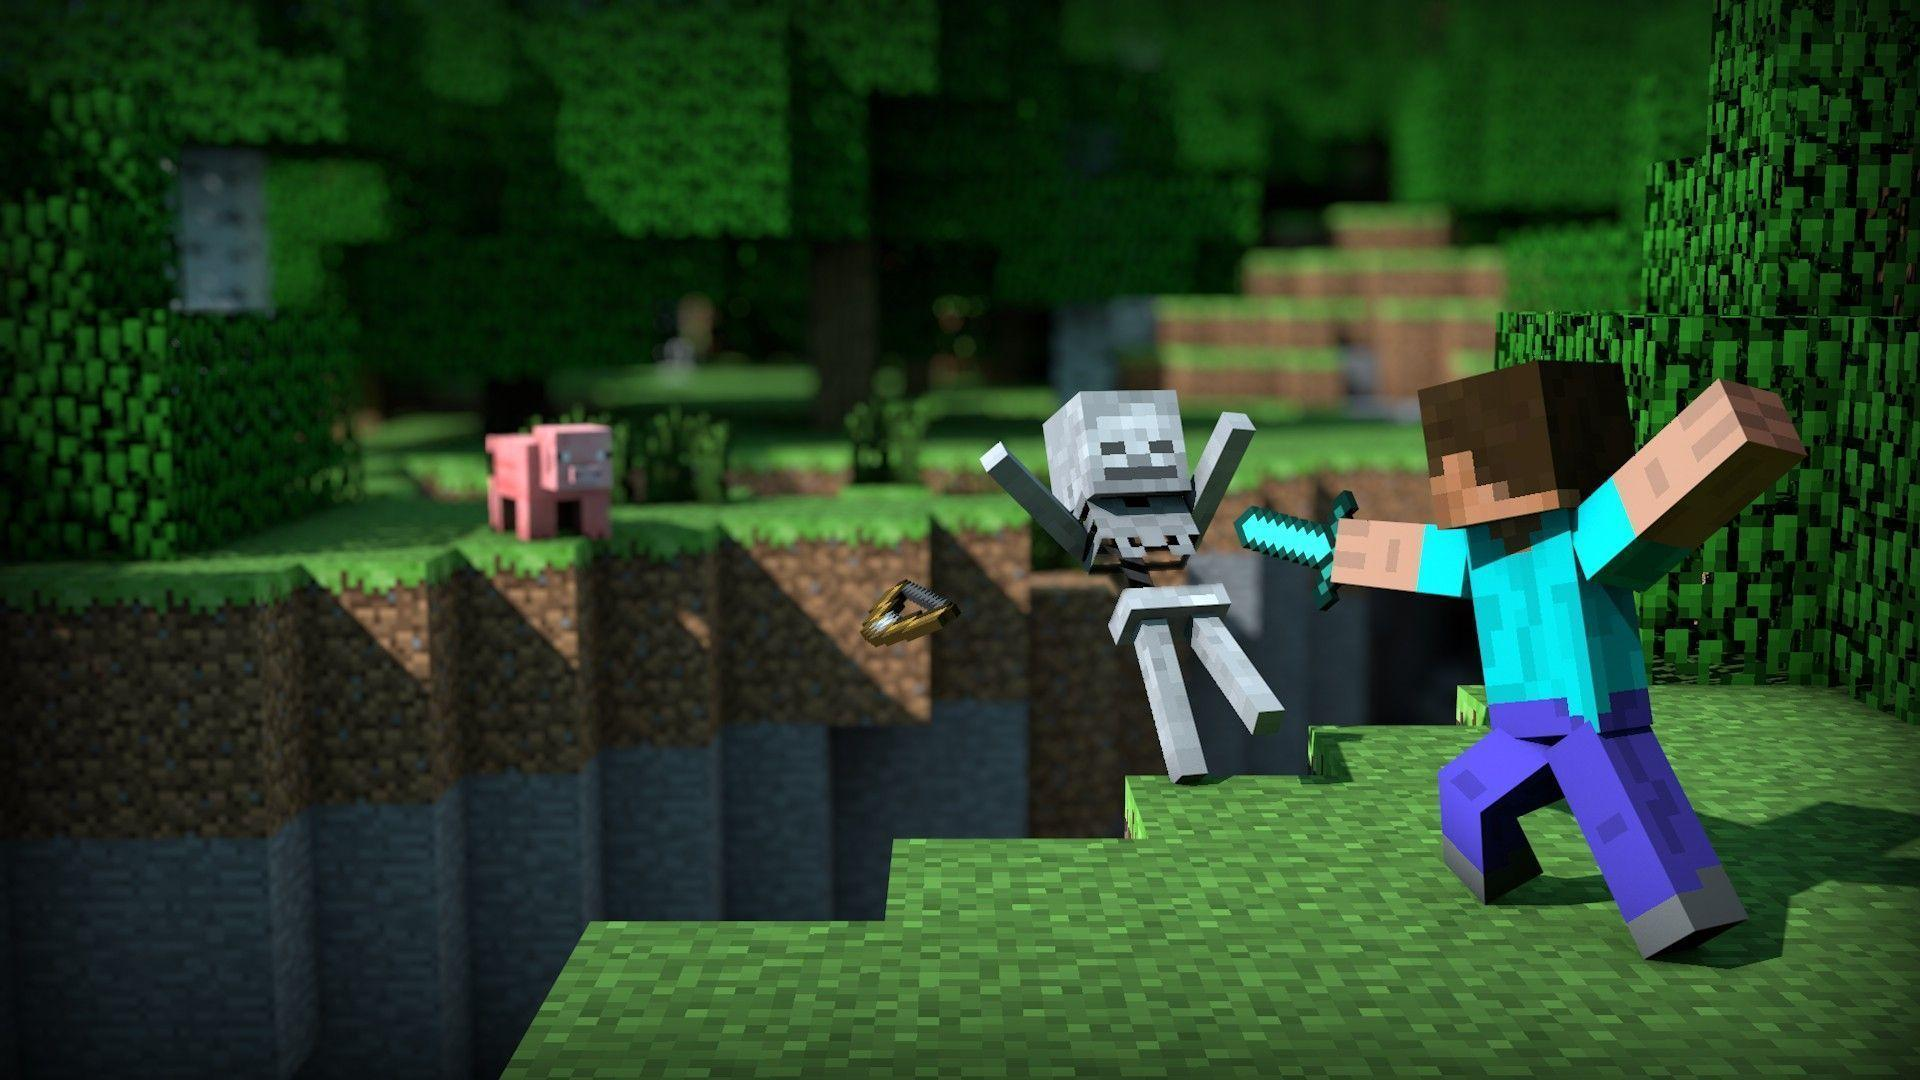 wallpapers for minecraft gaming backgrounds hd